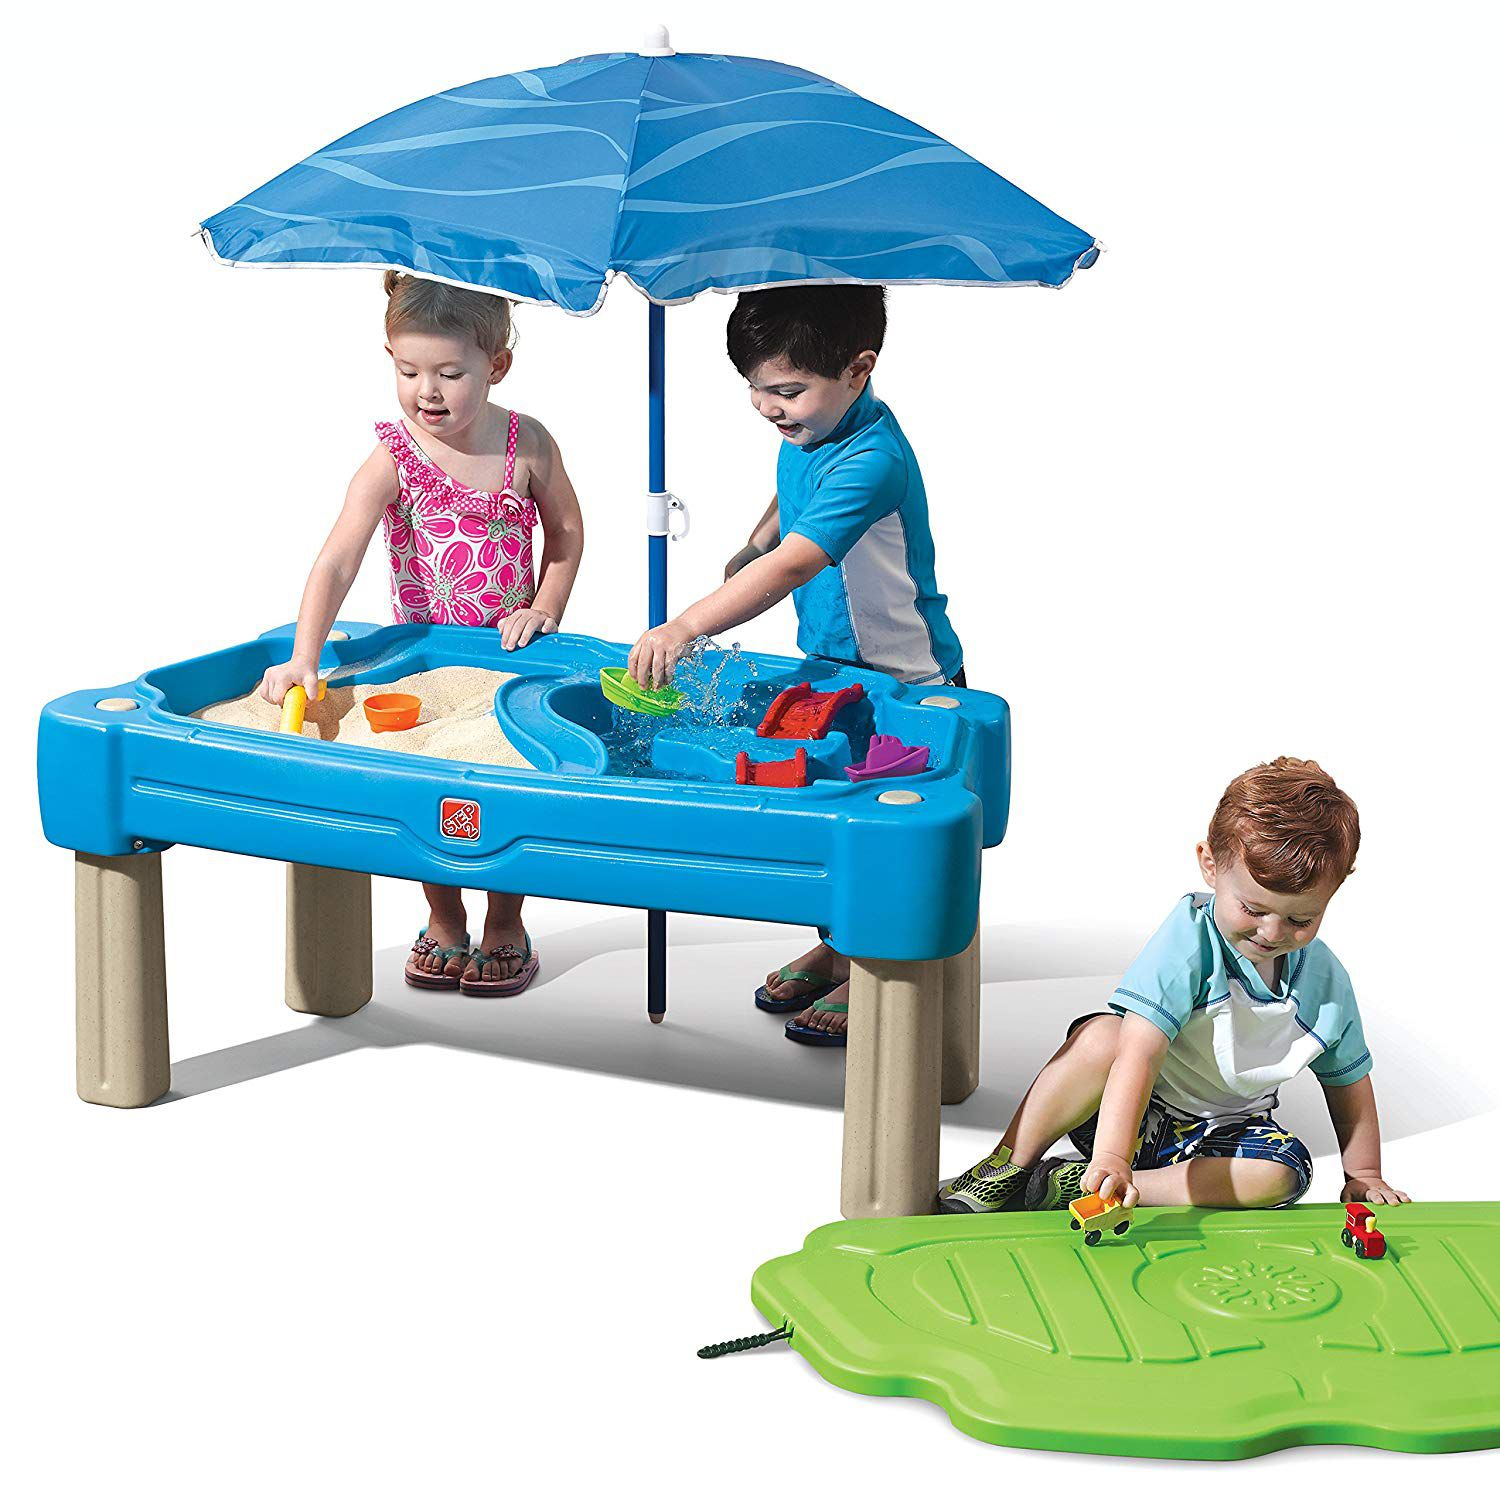 The 9 Best Outdoor Toys For Toddlers Of 2021